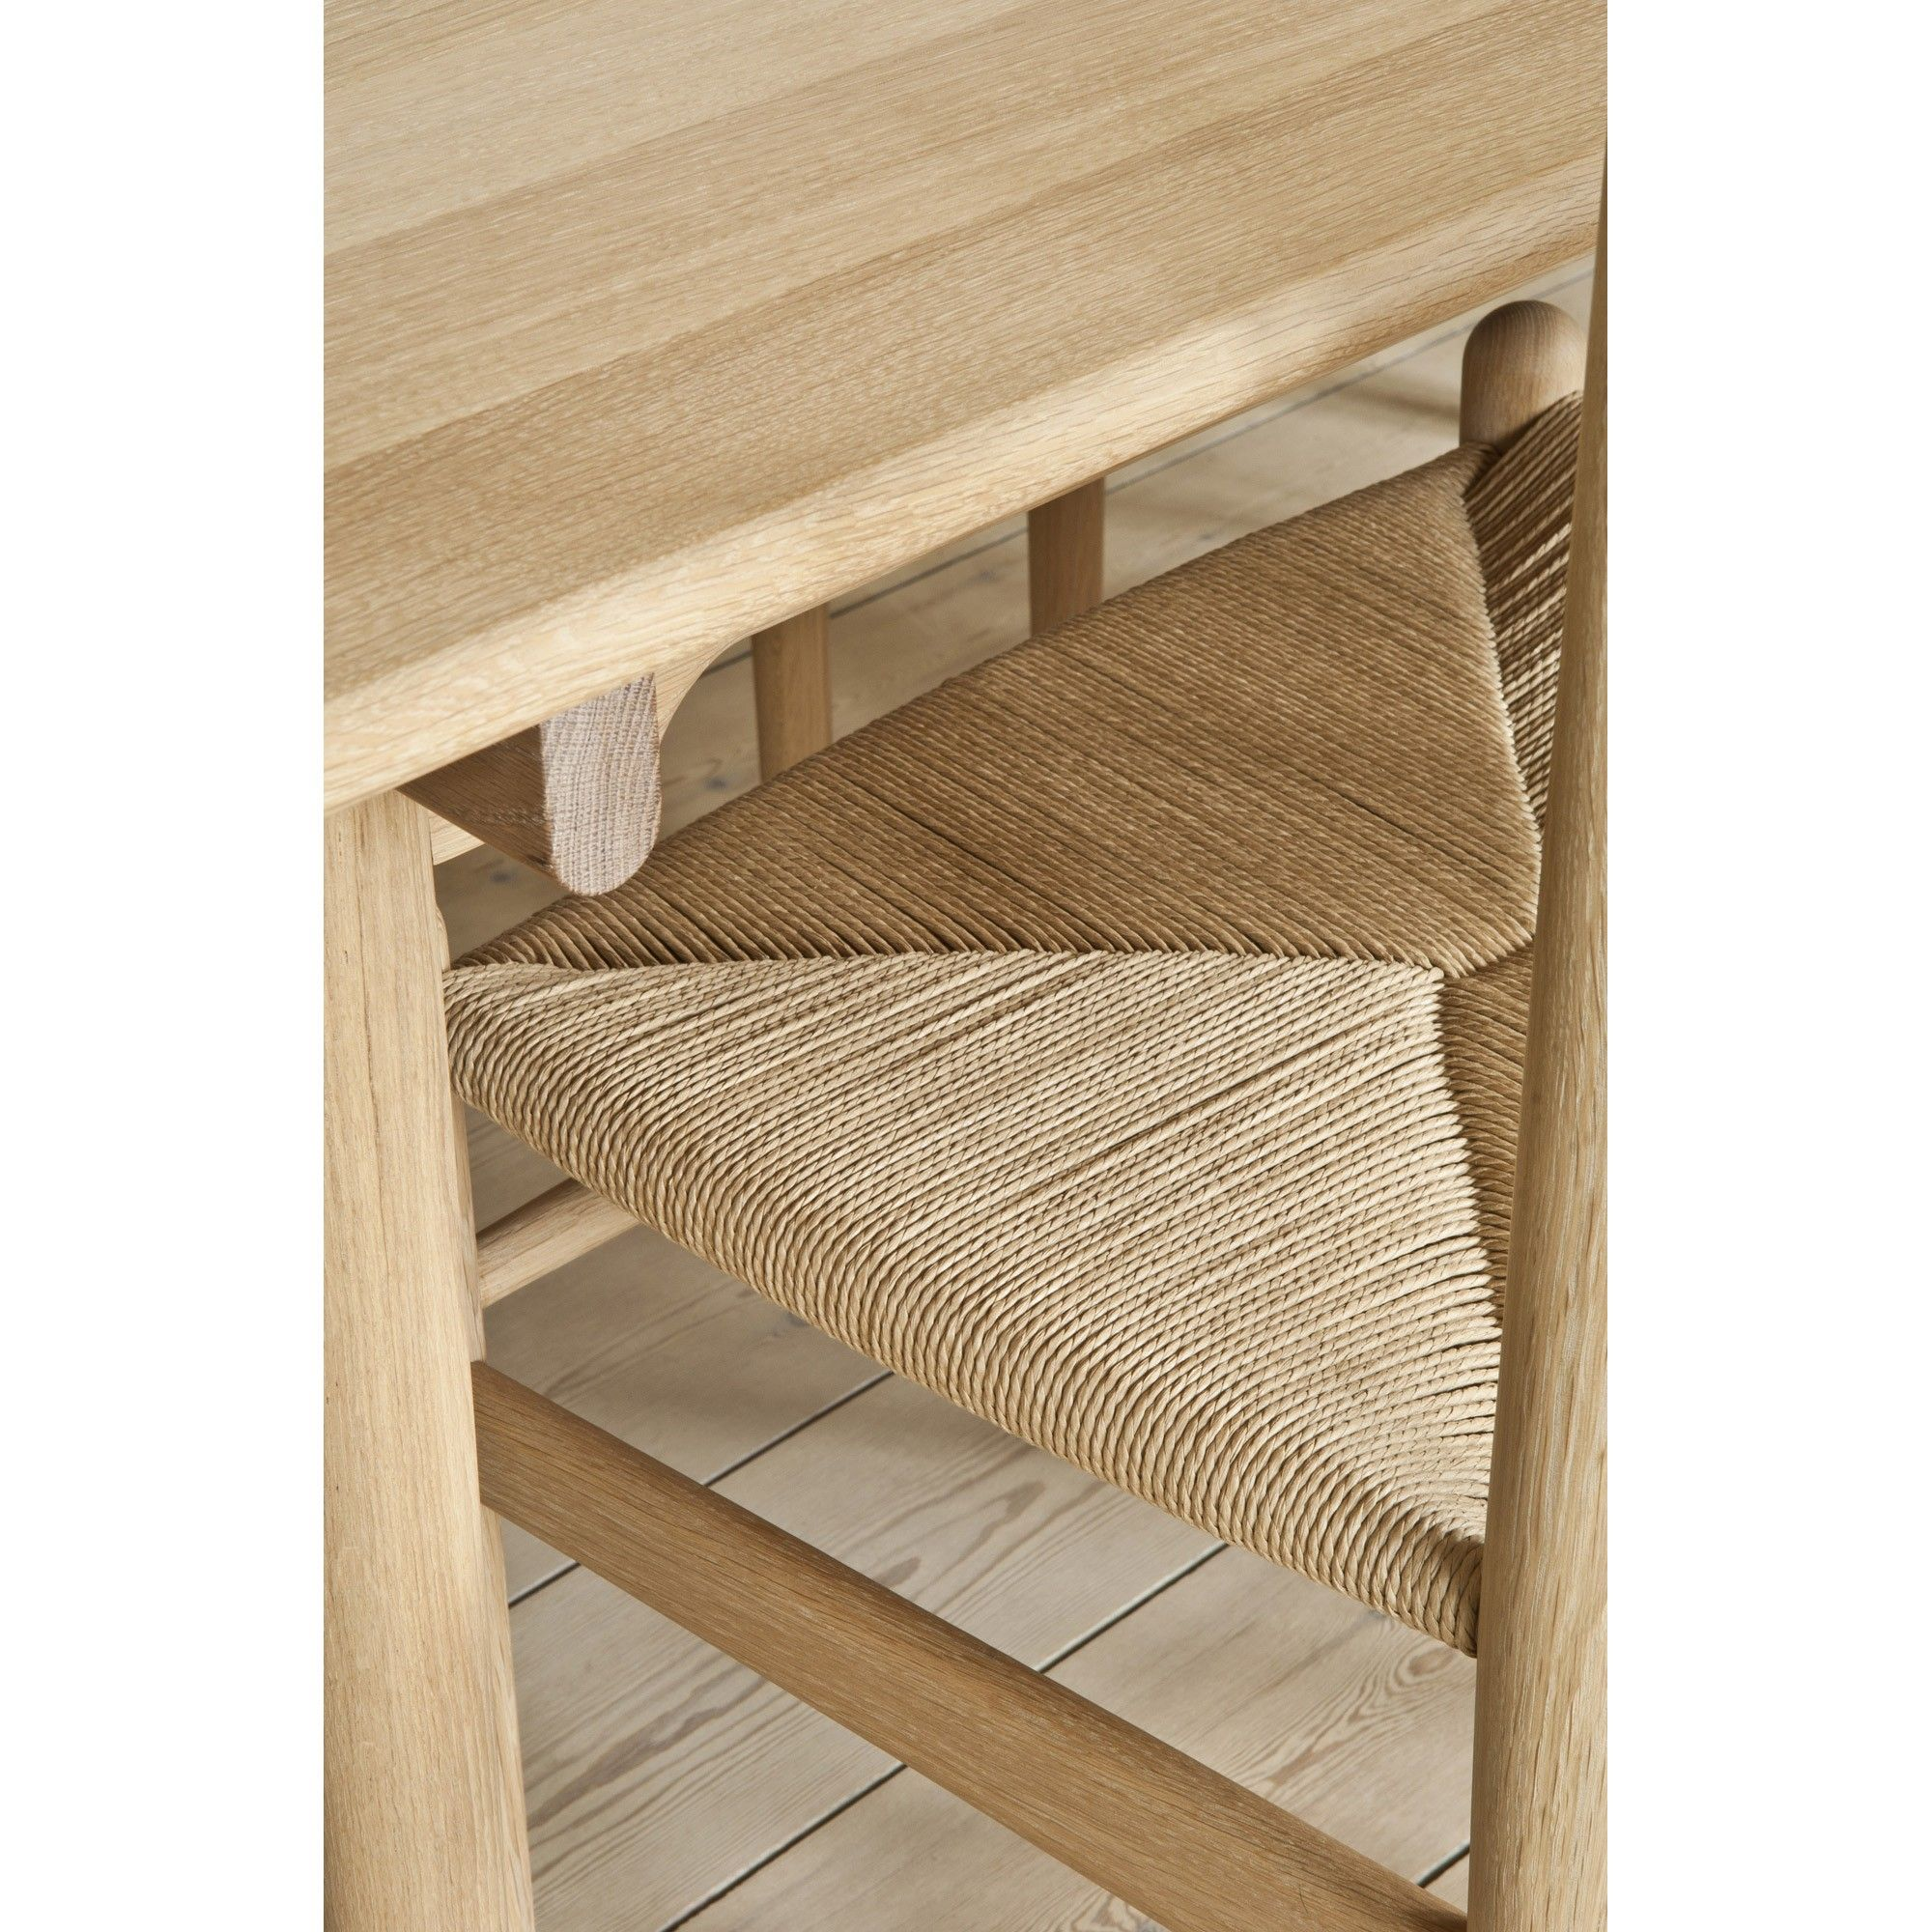 Ch table dining room pinterest table furniture solid wood